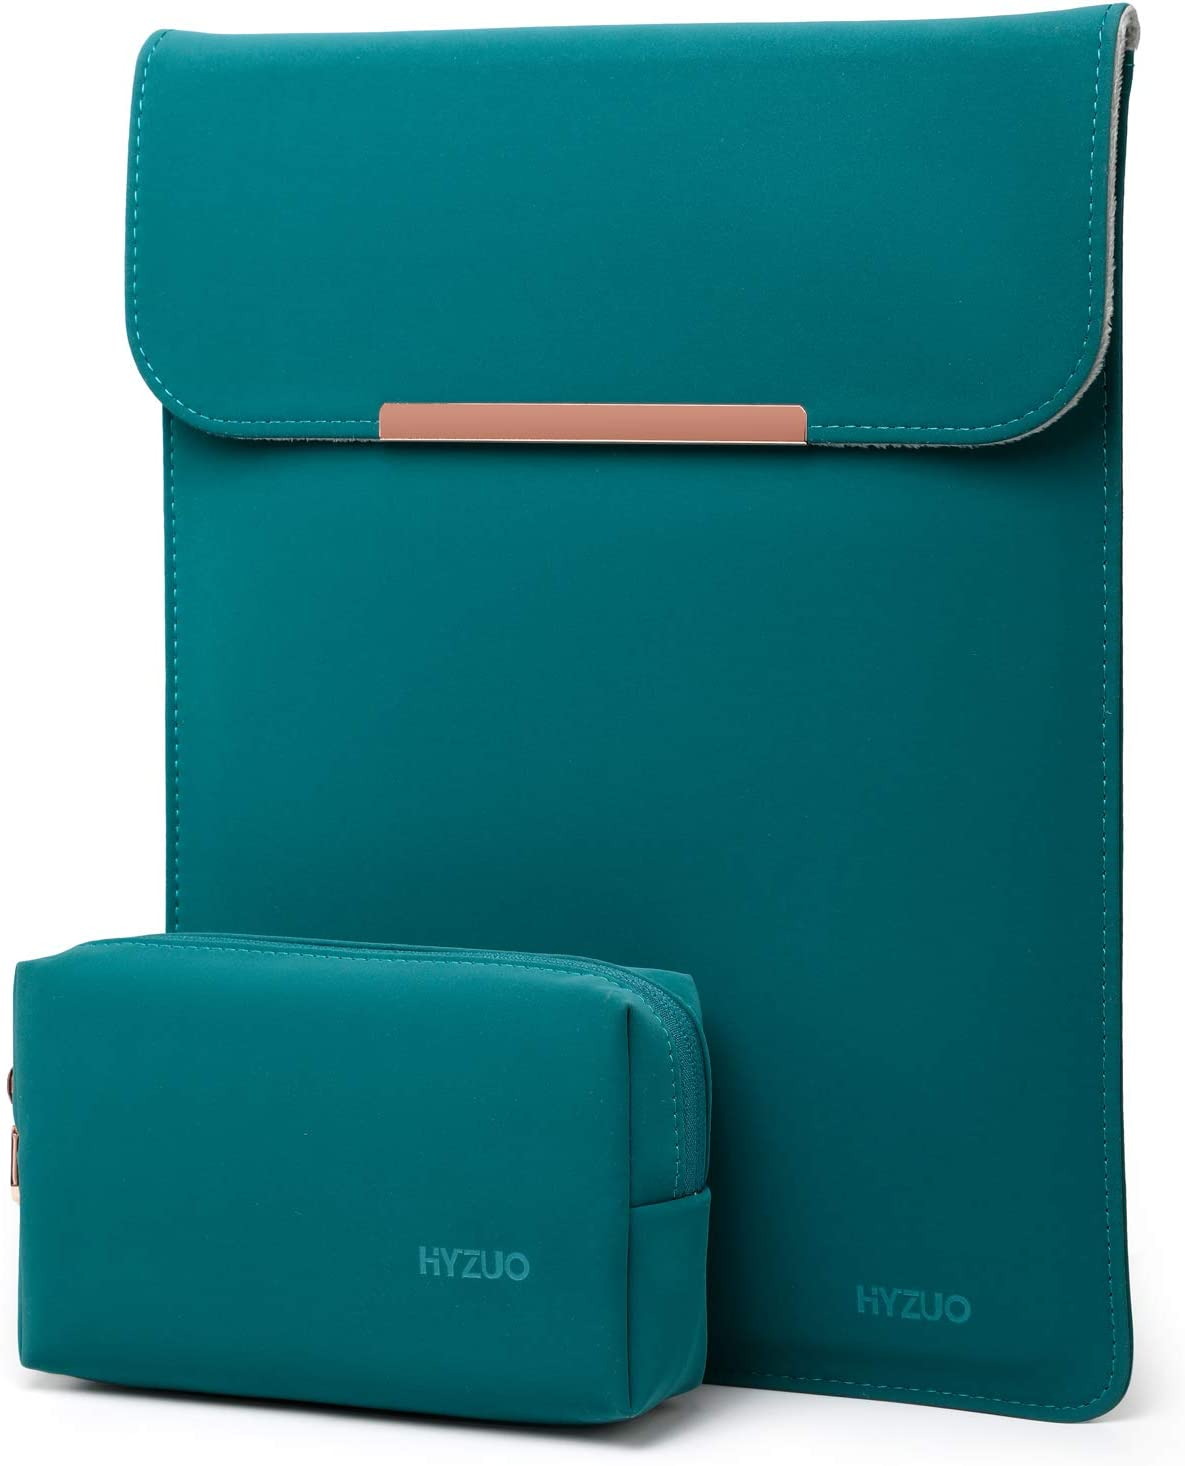 HYZUO 15-16 Inch Laptop Sleeve Case Compatible with 2019 MacBook Pro 16 A2141/ Surface Laptop 3 15 Inch/Dell XPS 15/2012-2015 Old MacBook Pro Retina 15 A1398, Dark Green